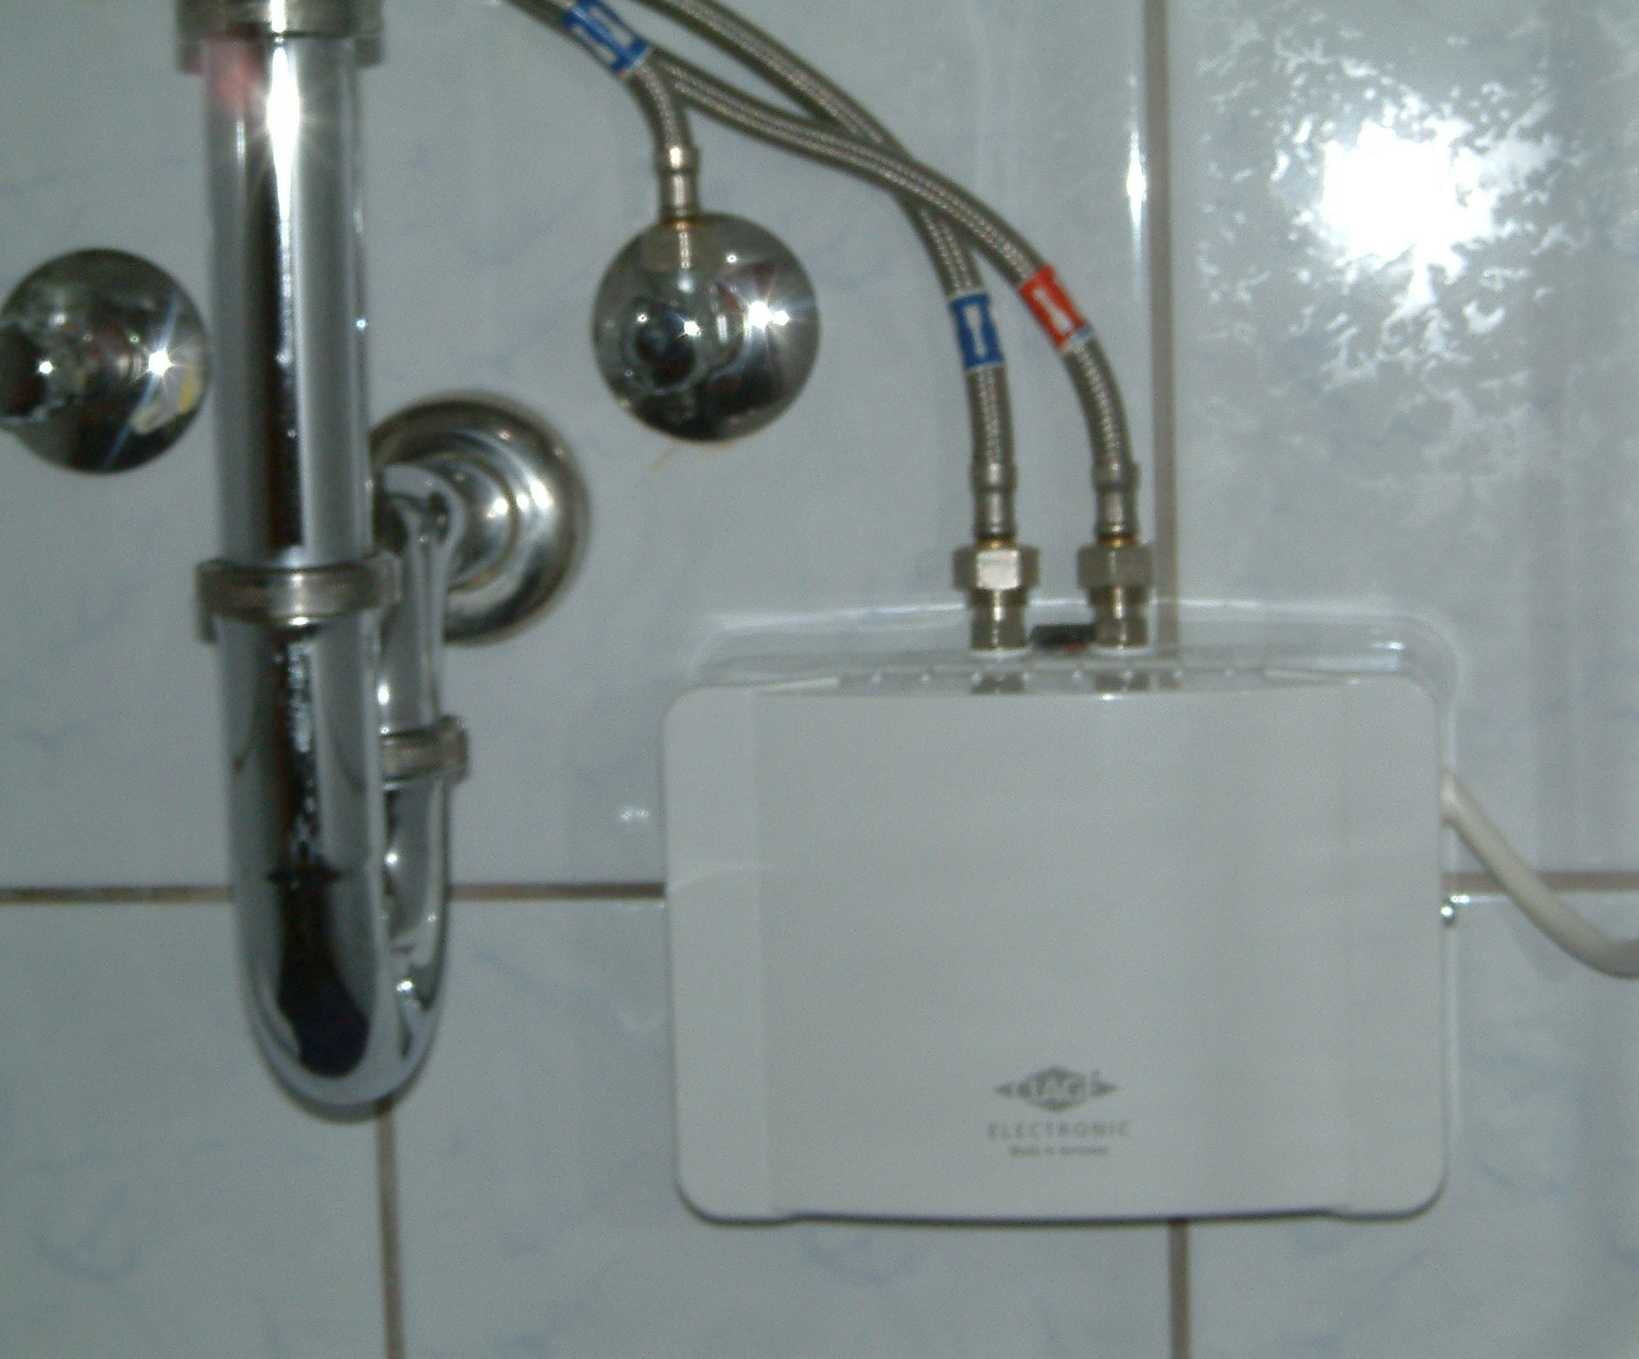 The Most Simple And Stylish Water Heater In Bathroom That